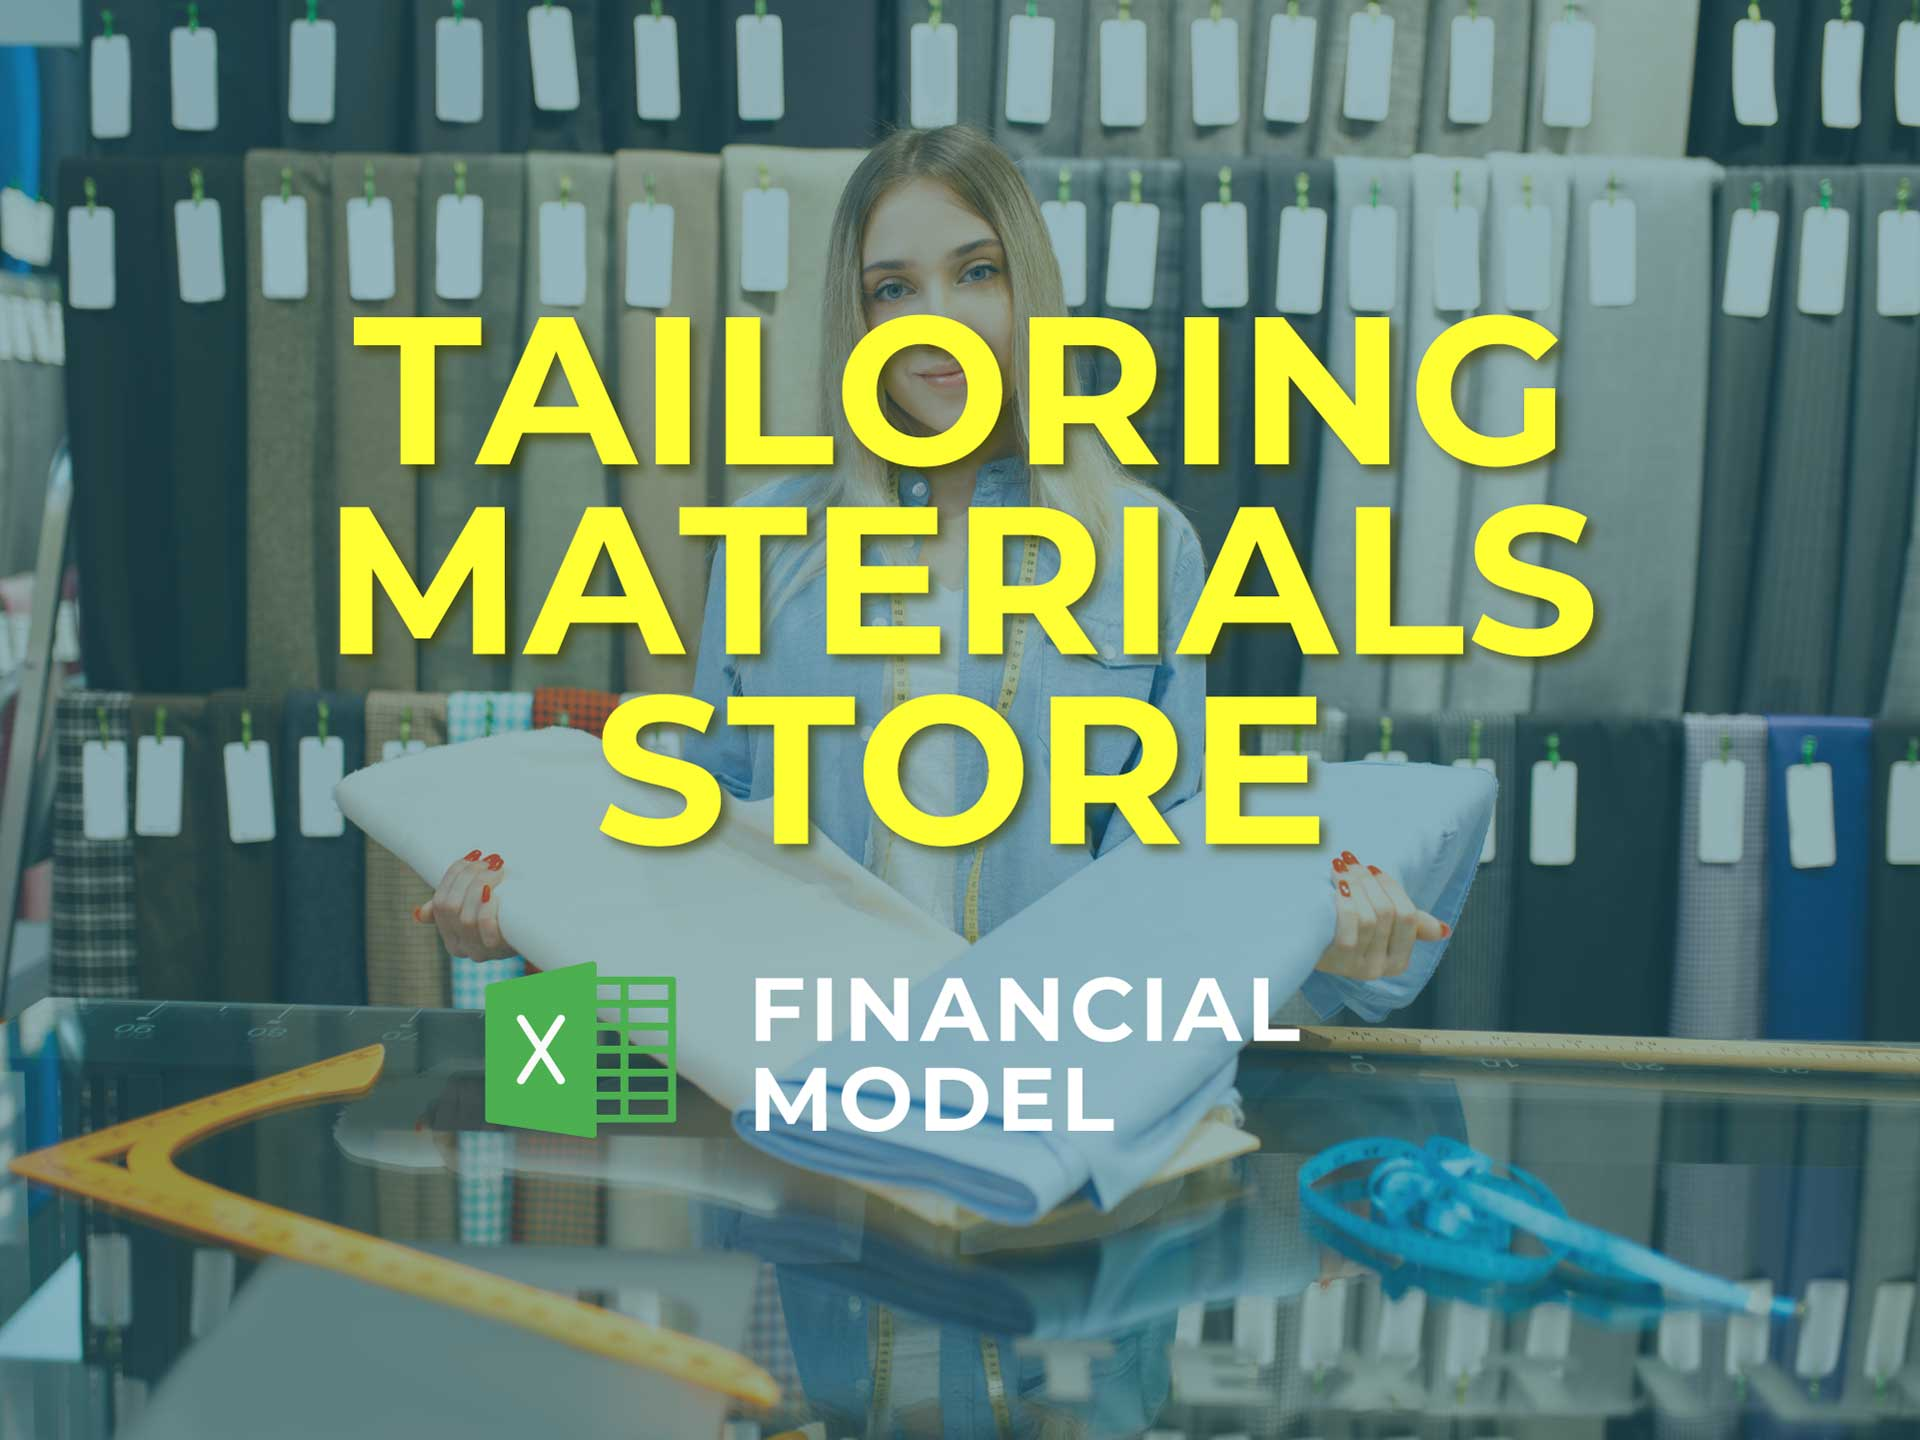 Tailoring Materials Store